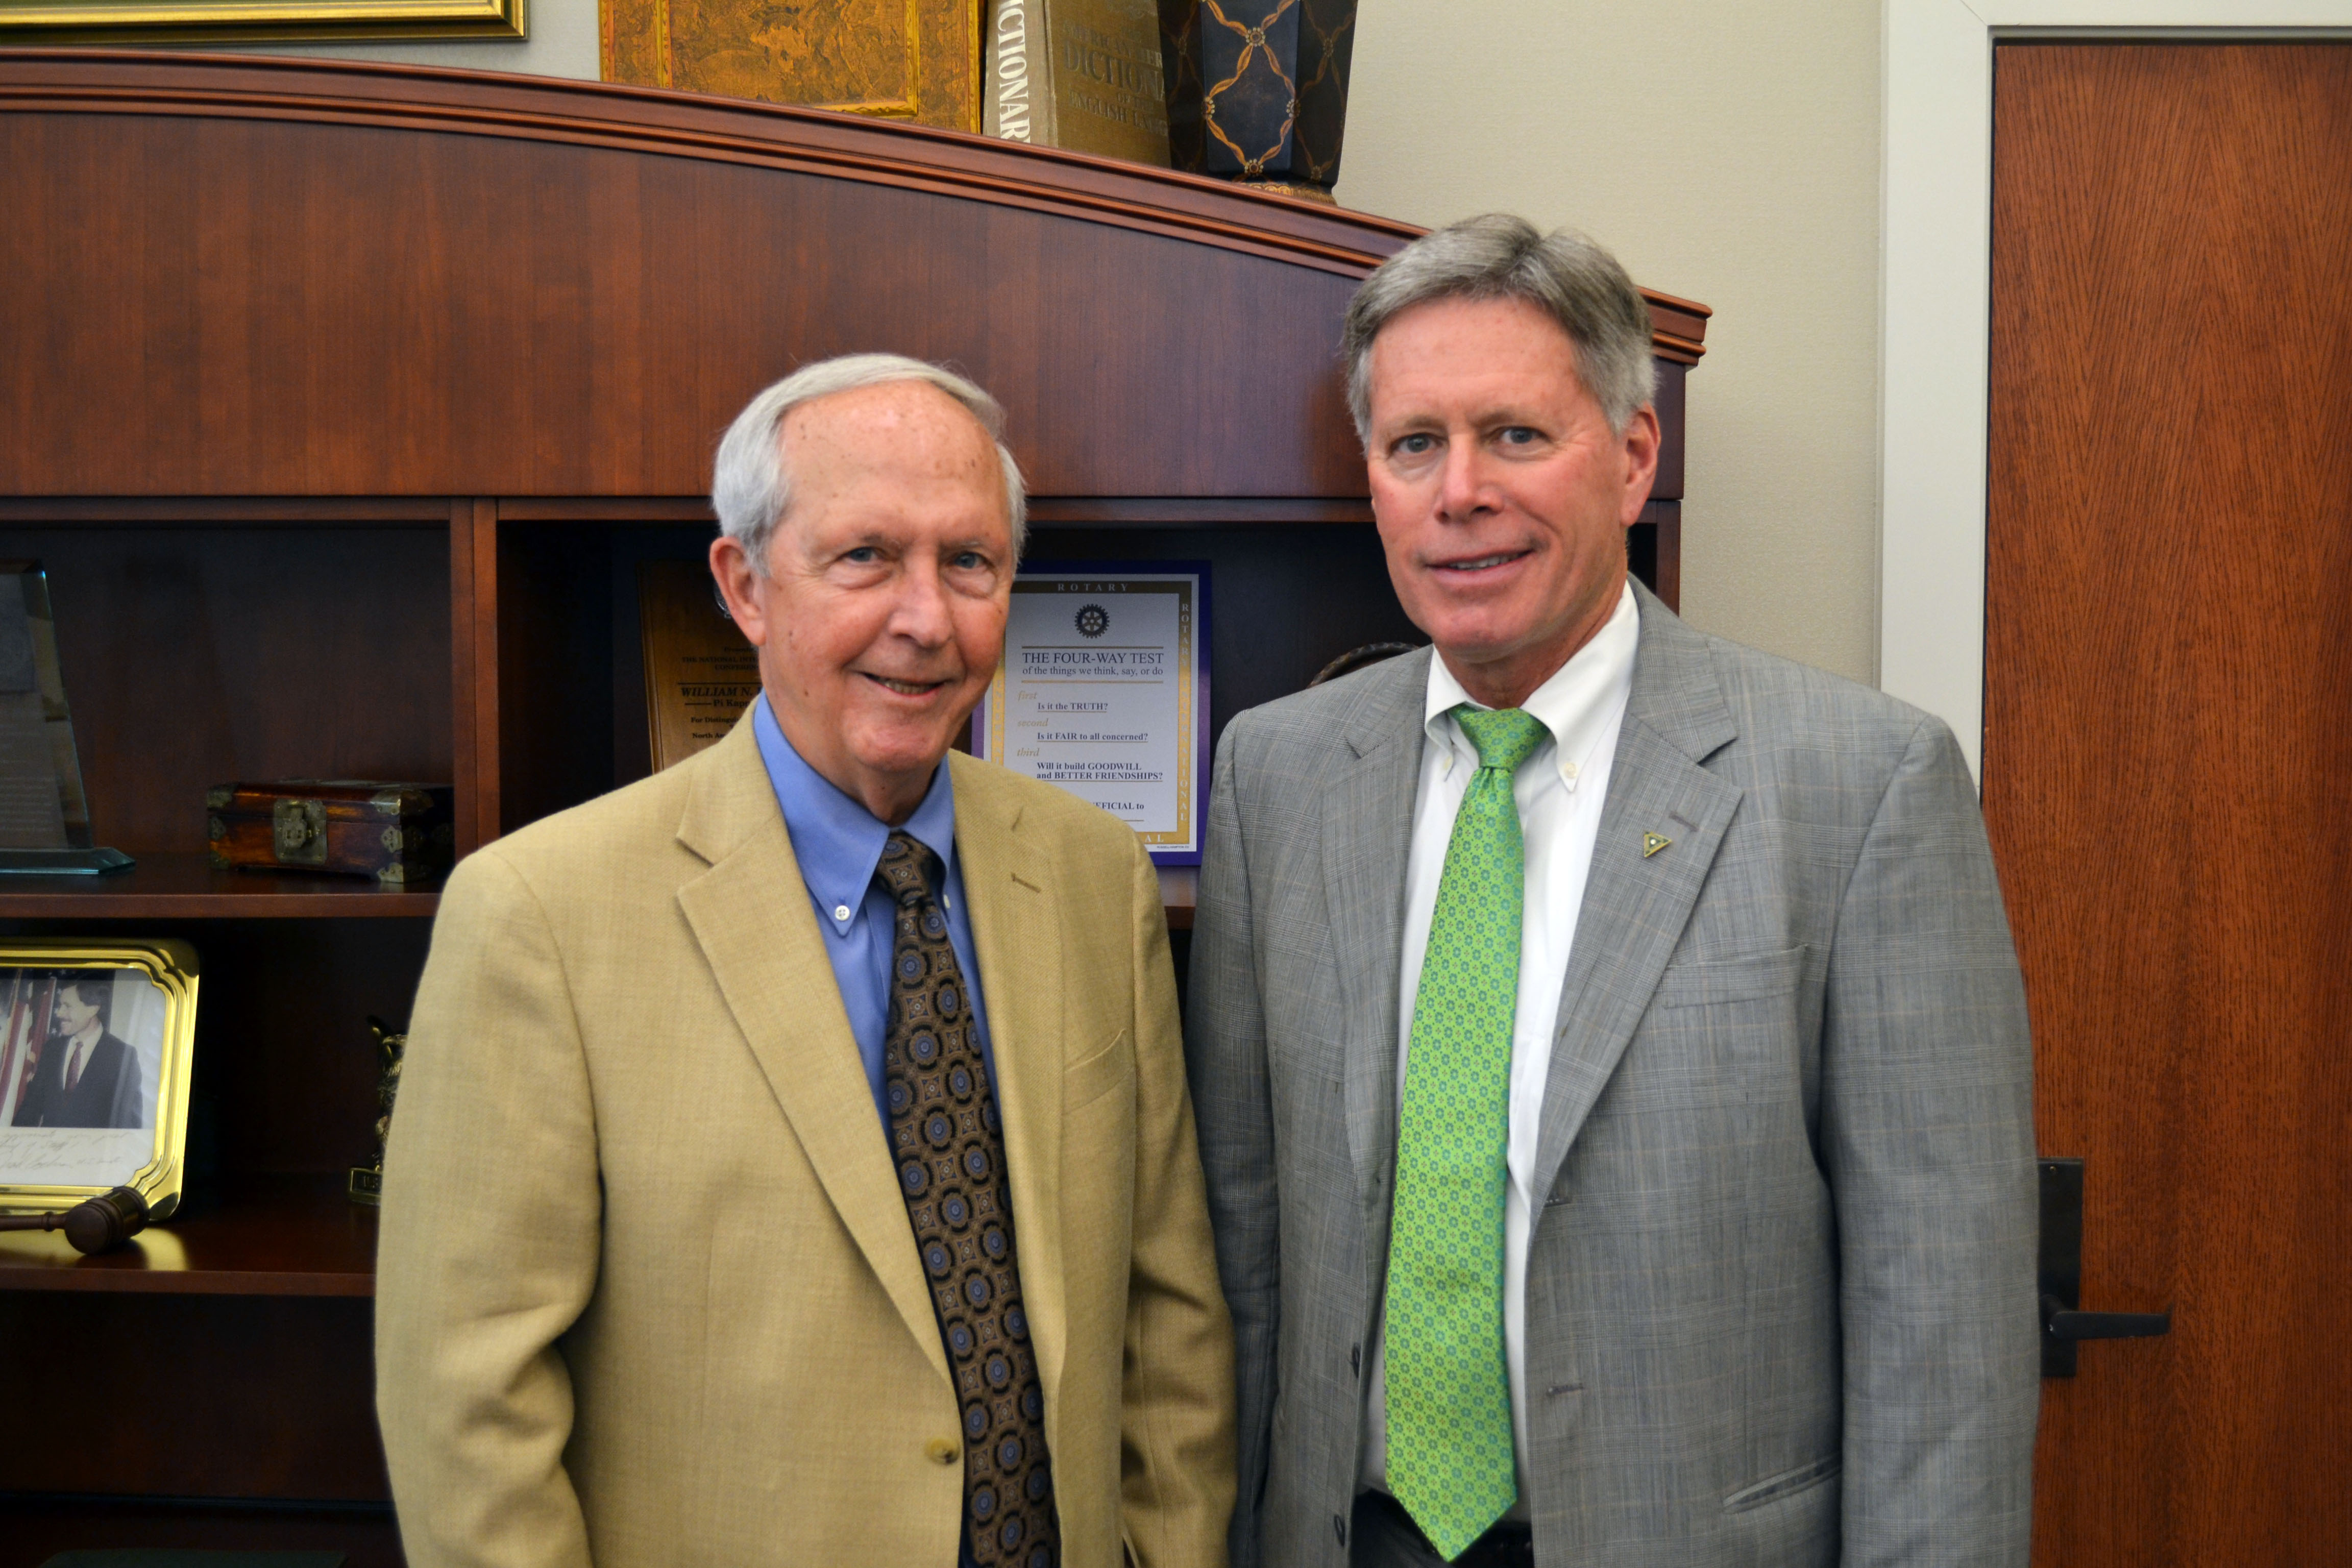 Photo: President Emeritus Dr. Kent Wyatt, Inauguration Chair, and William N. LaForge, Delta State President.